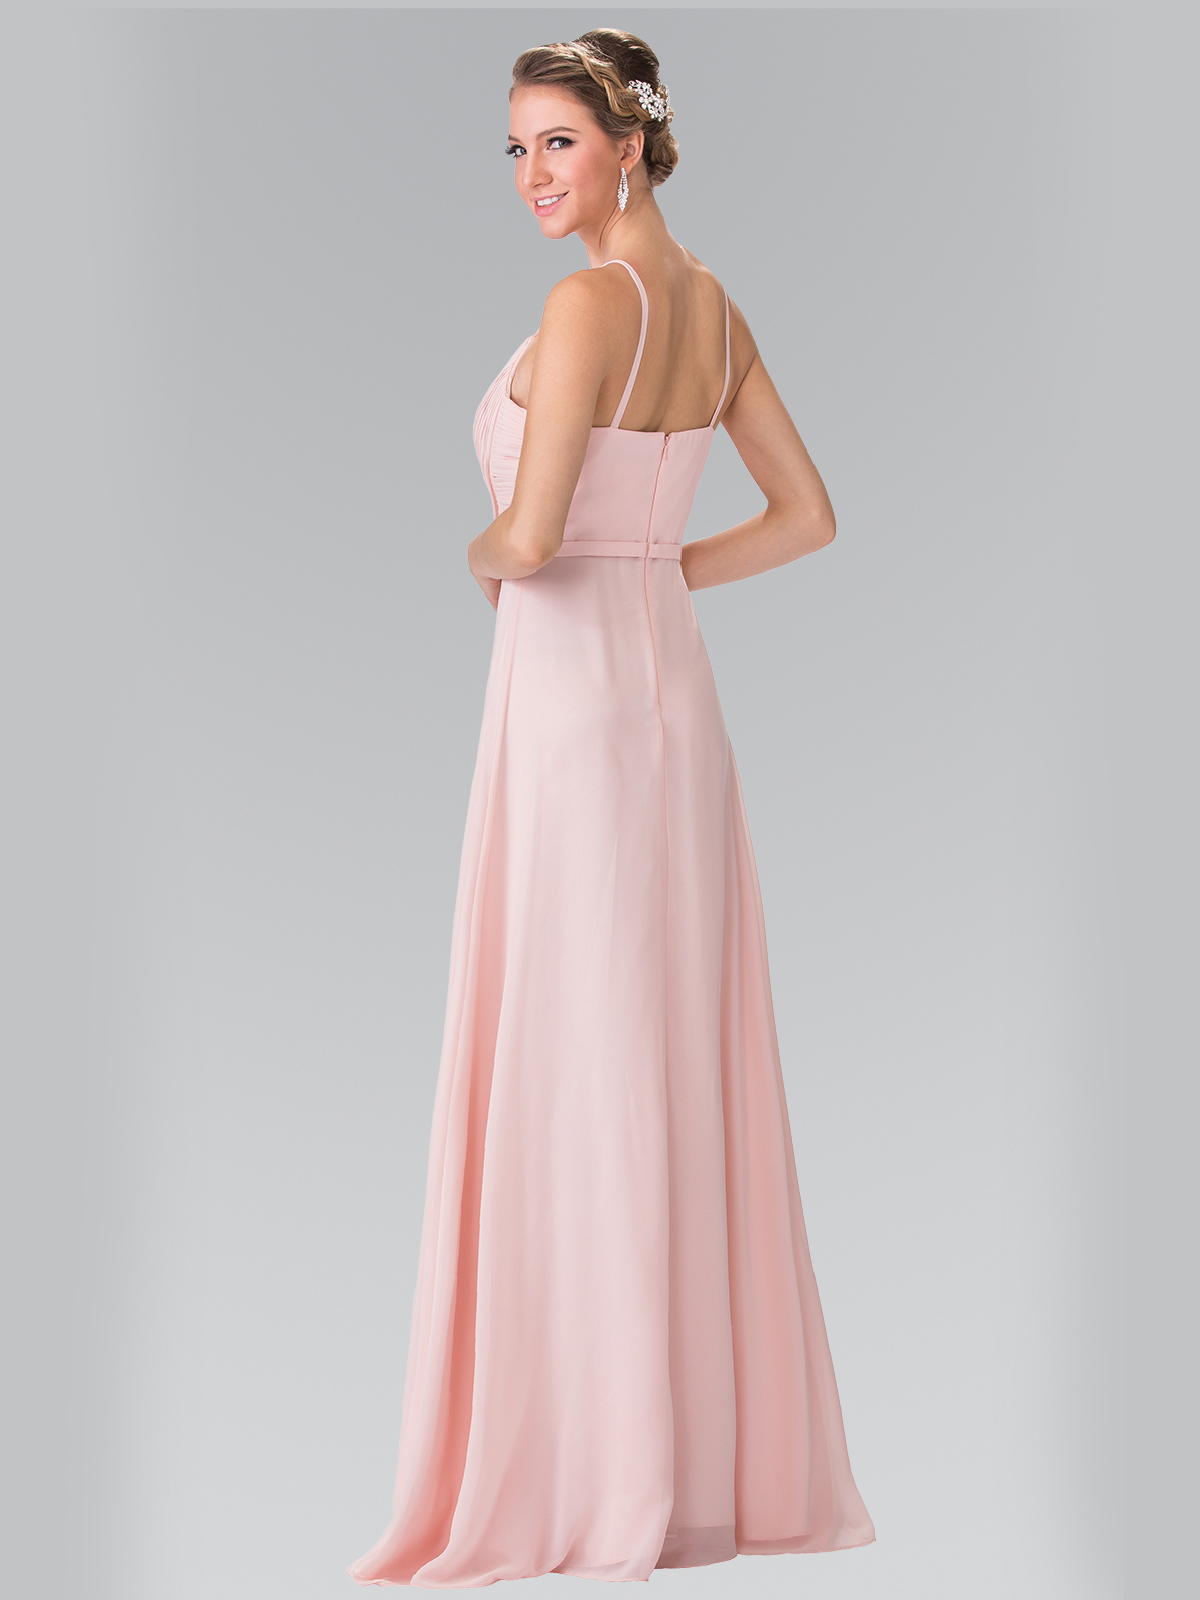 Chiffon Bridesmaid Dress with Spaghetti Straps